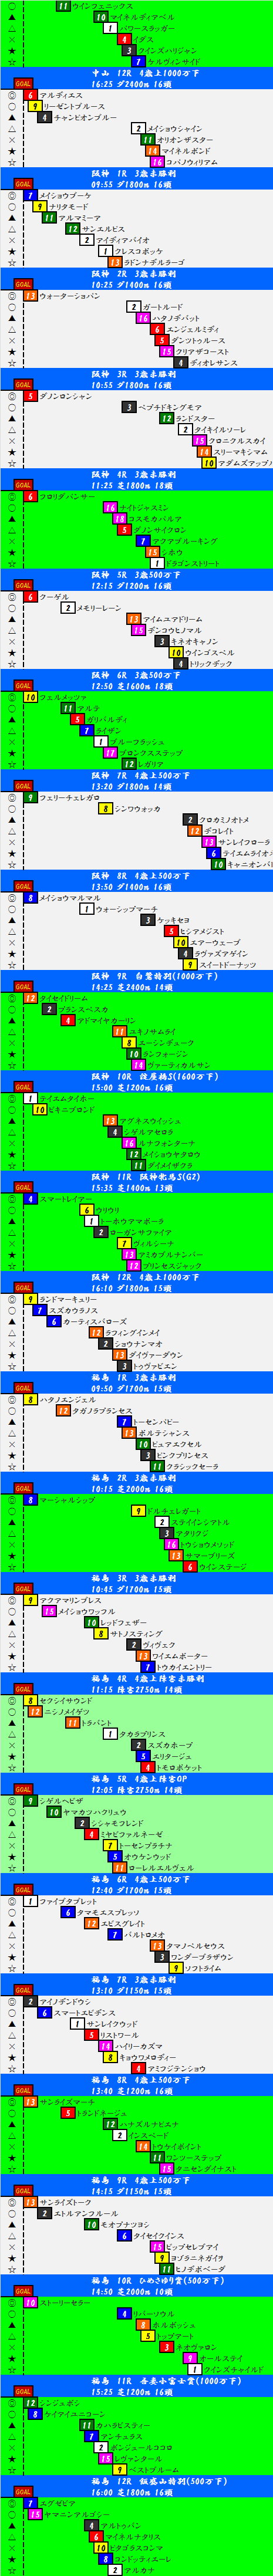 201404122.png